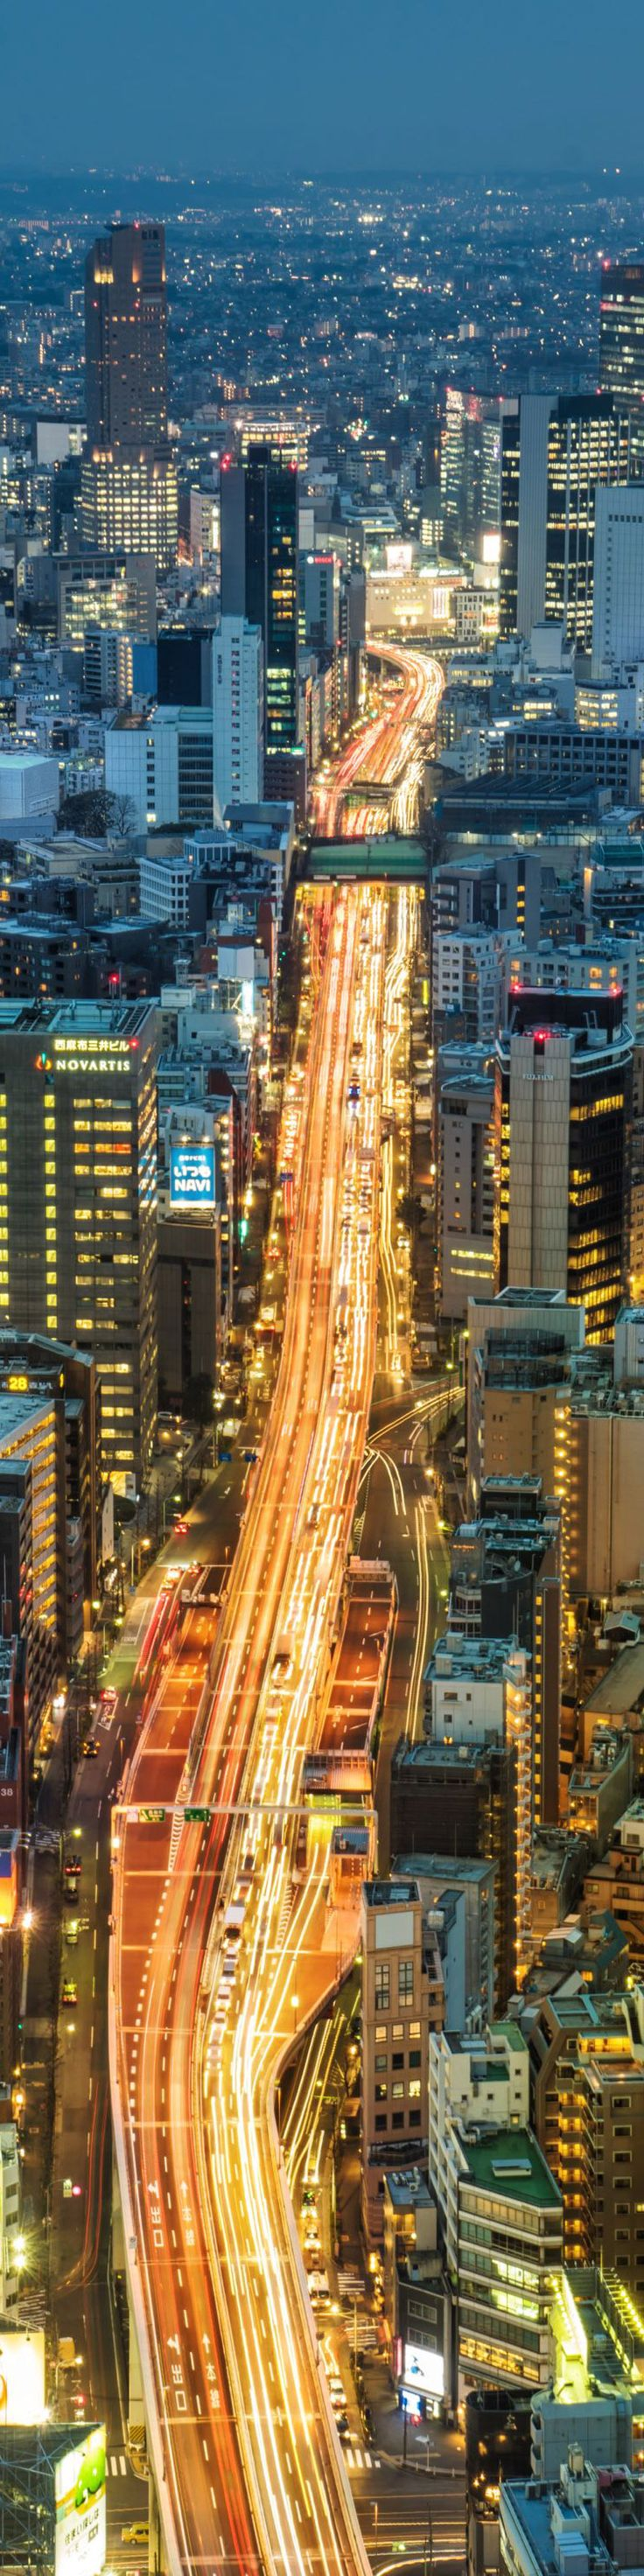 """Japan - from the Exhibition: """"Cropped for Pinterest"""" - photo from #treyratcliff Trey Ratcliff at http://www.StuckInCustoms.com"""